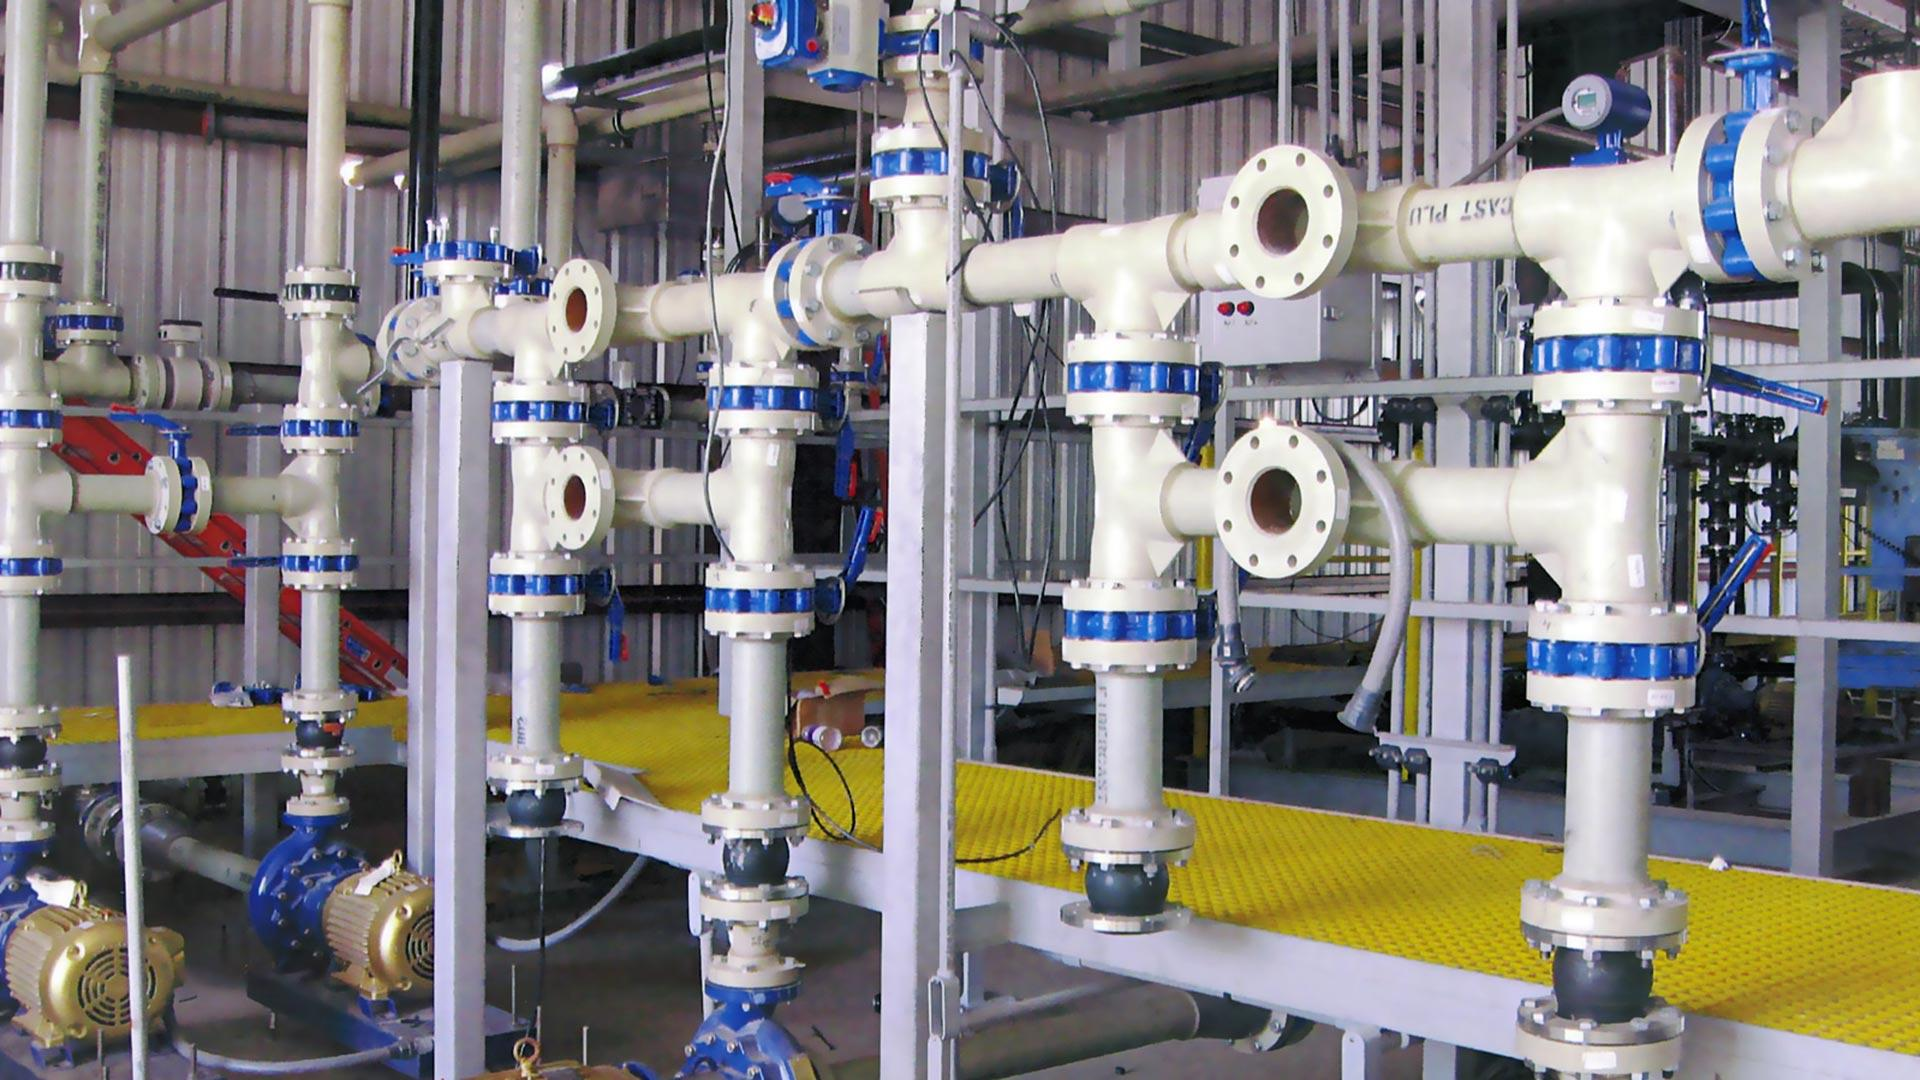 A white and blue Centricast Fiberglass Pipe system